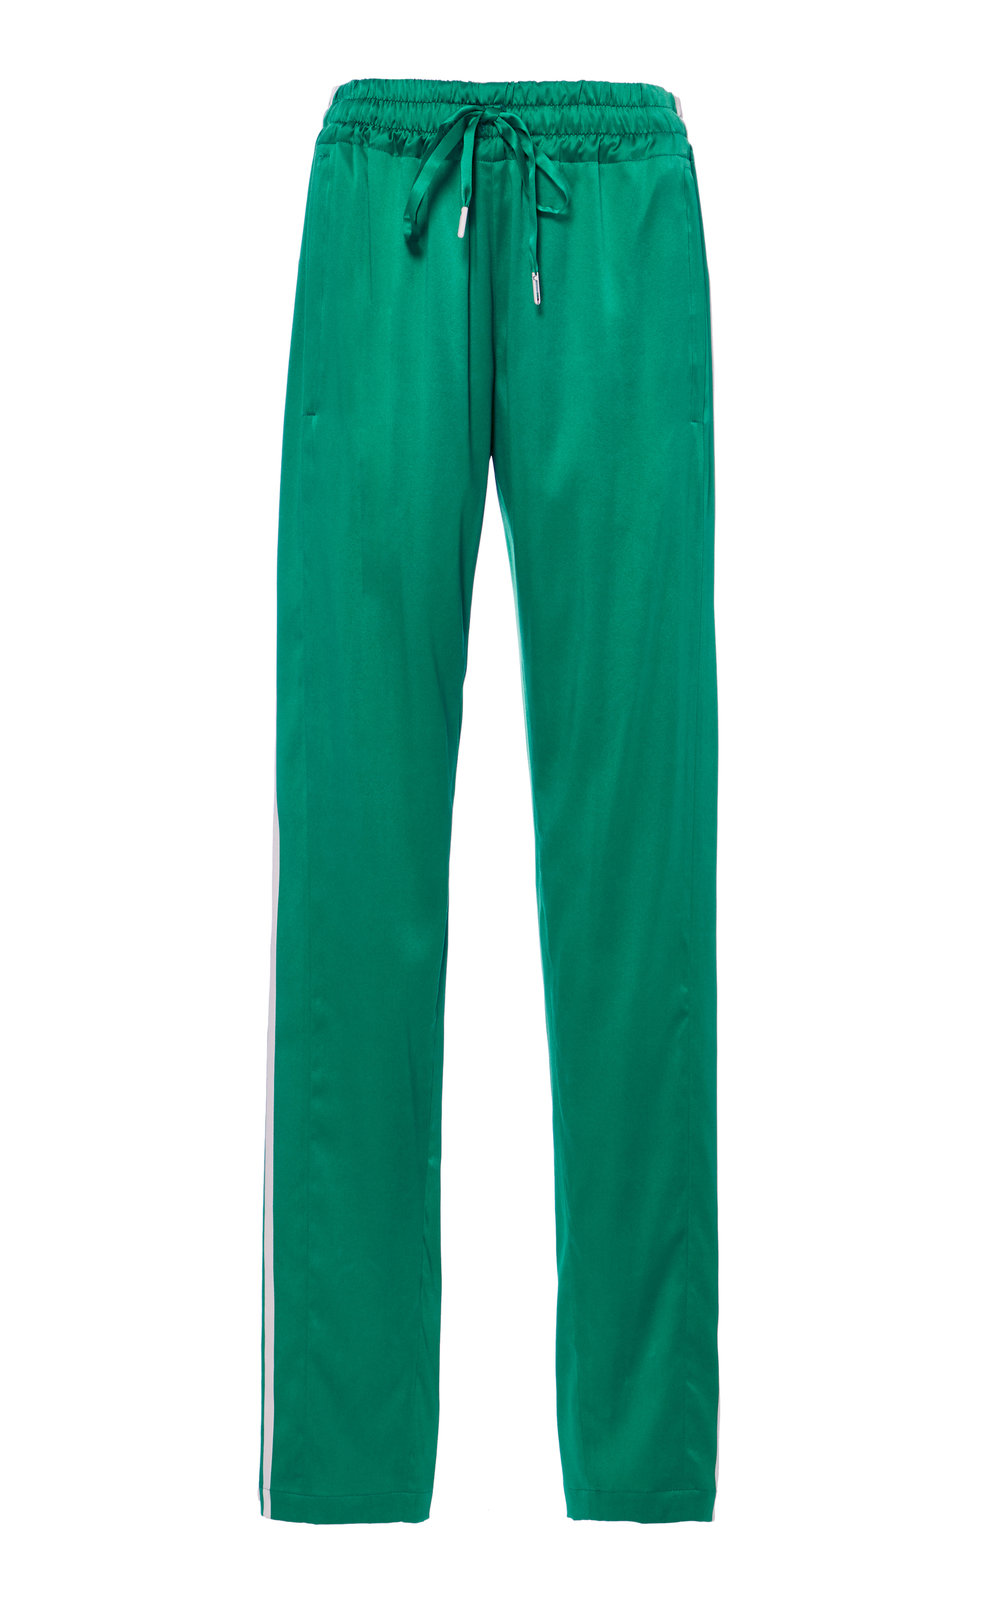 large_monse-green-side-snap-track-pants.jpg